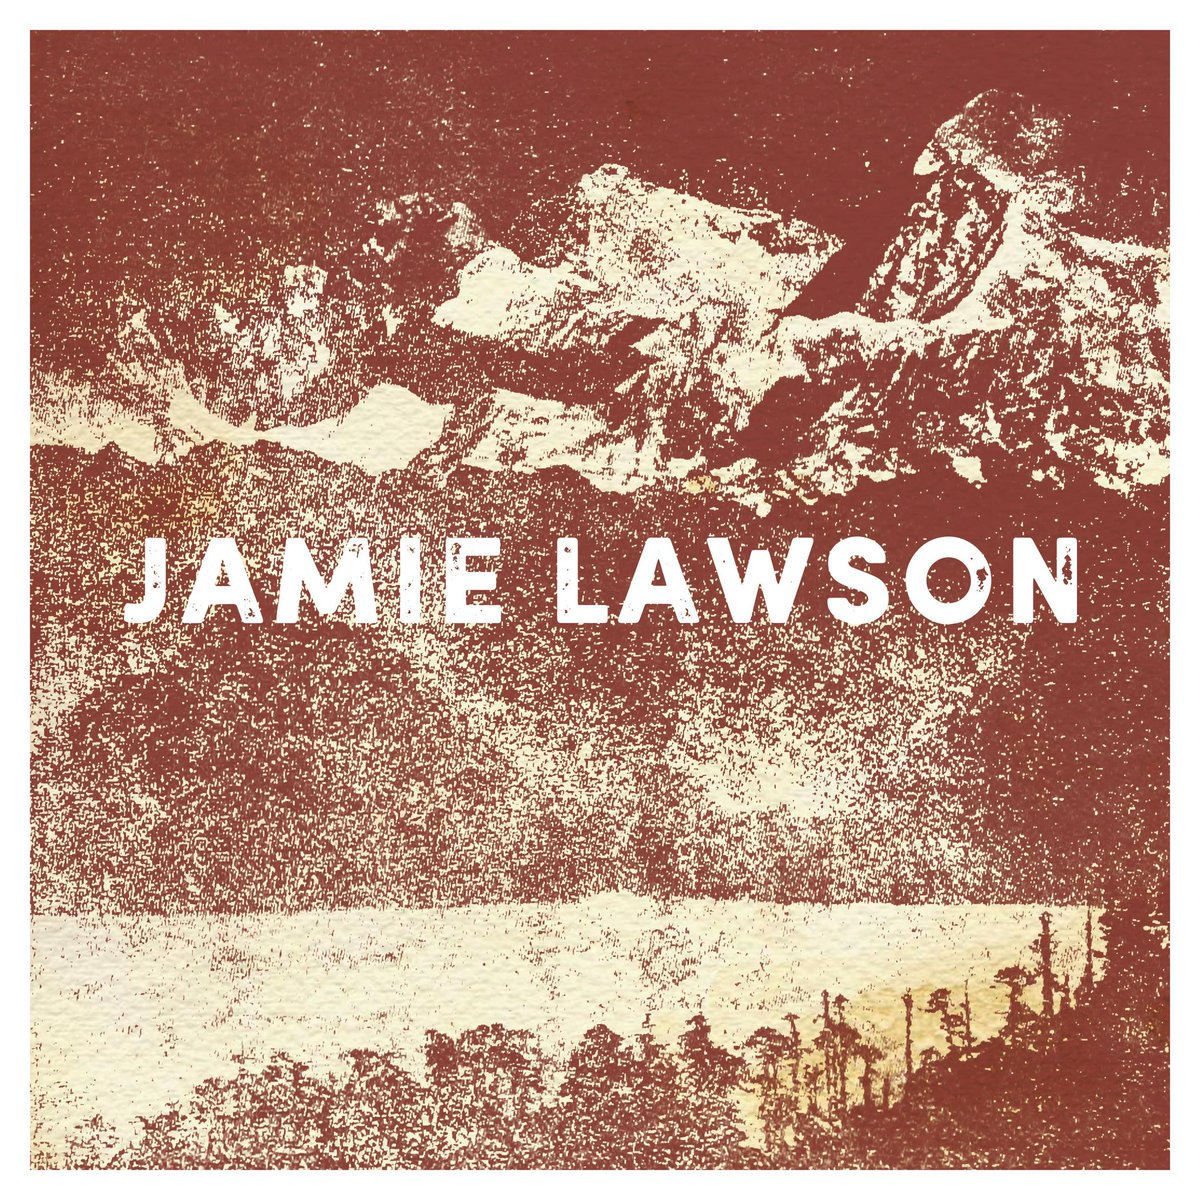 RT @bpi_music: .@jamielawsonuk's album is the 1st to be released on @edsheeran's label Gingerbread Man Records & it's out Friday! http://t.…